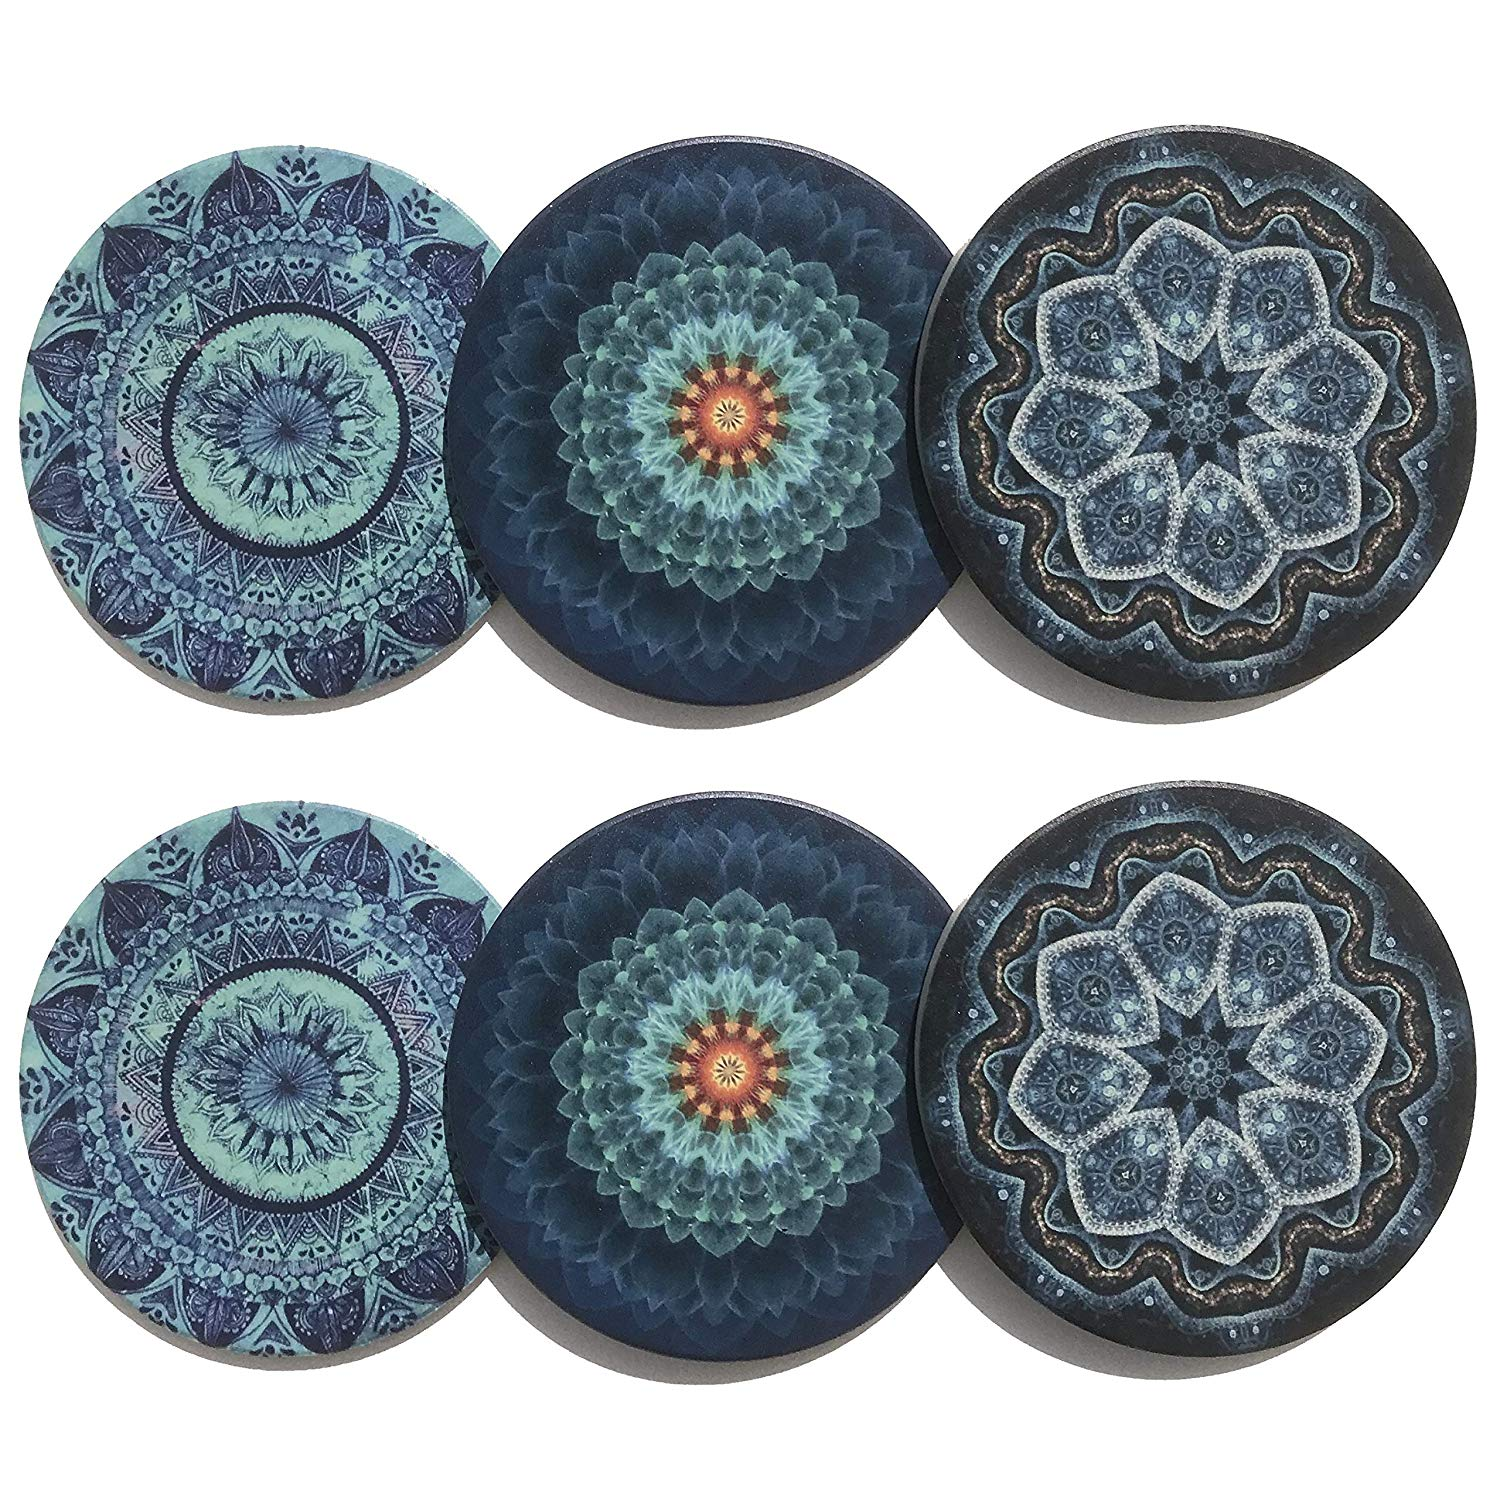 Unique Set of 6 Absorbent Ceramic Coasters for Protecting Furniture